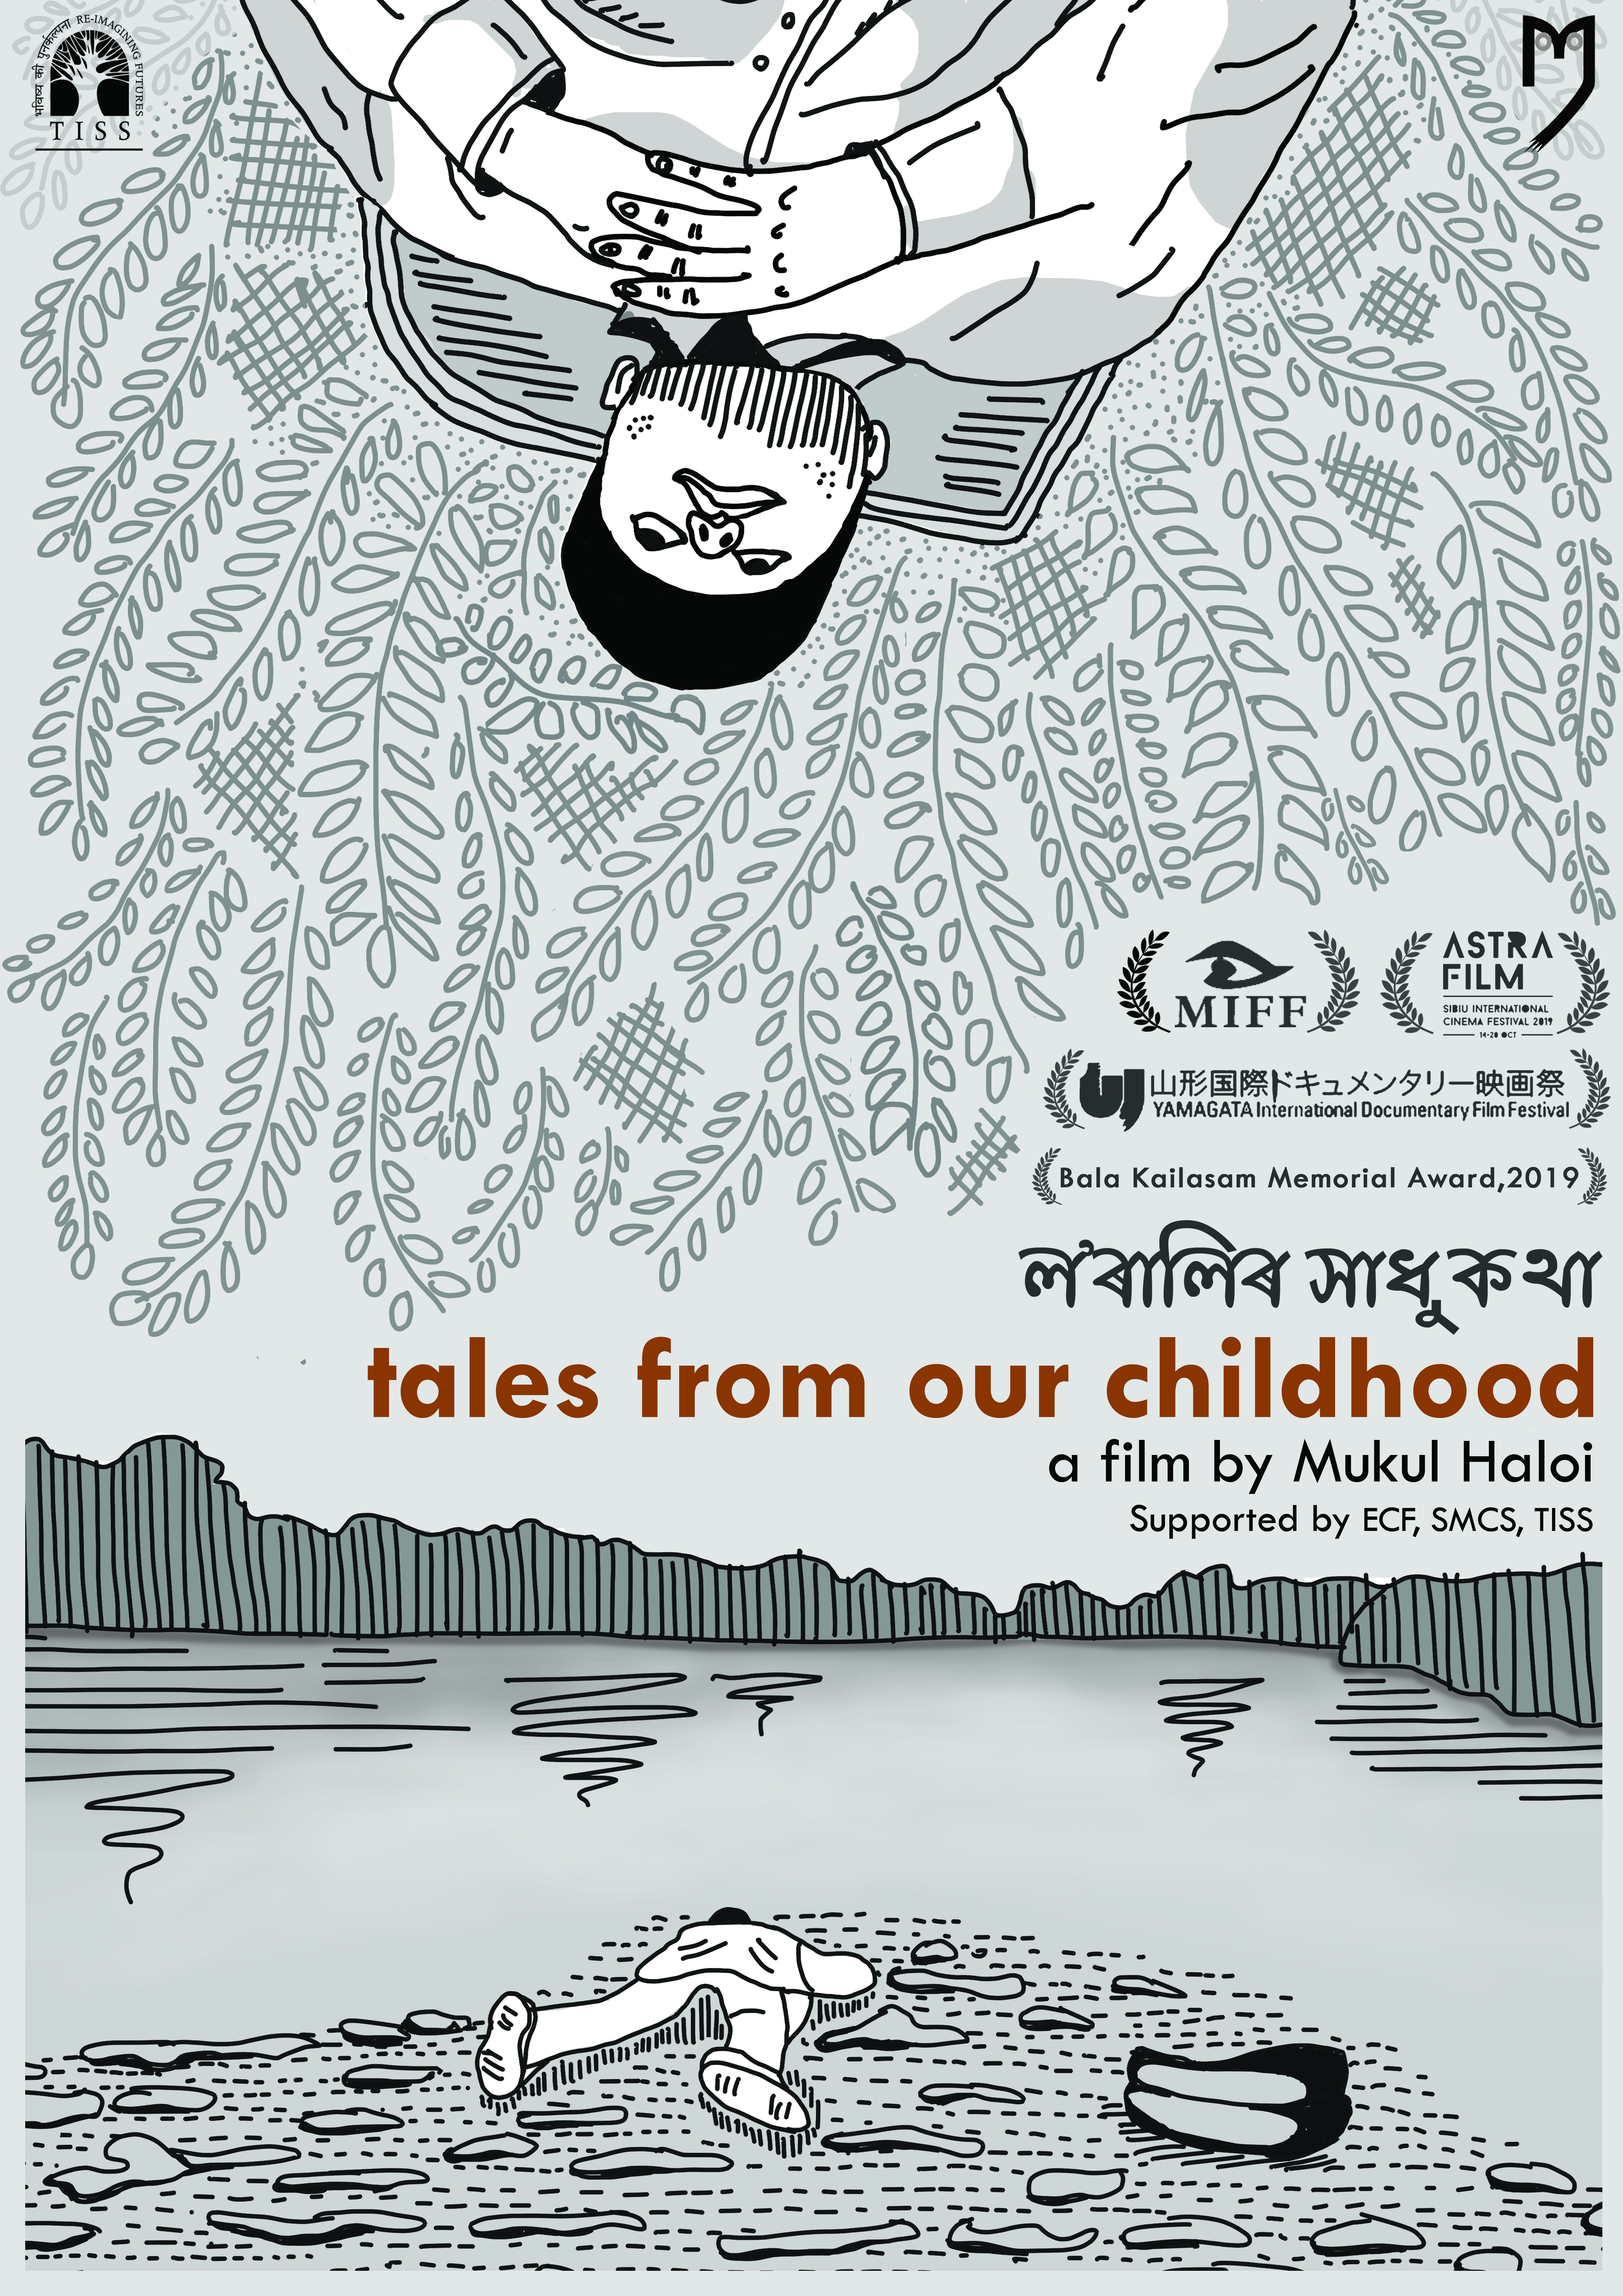 tales from our childhood (with festival laurels)